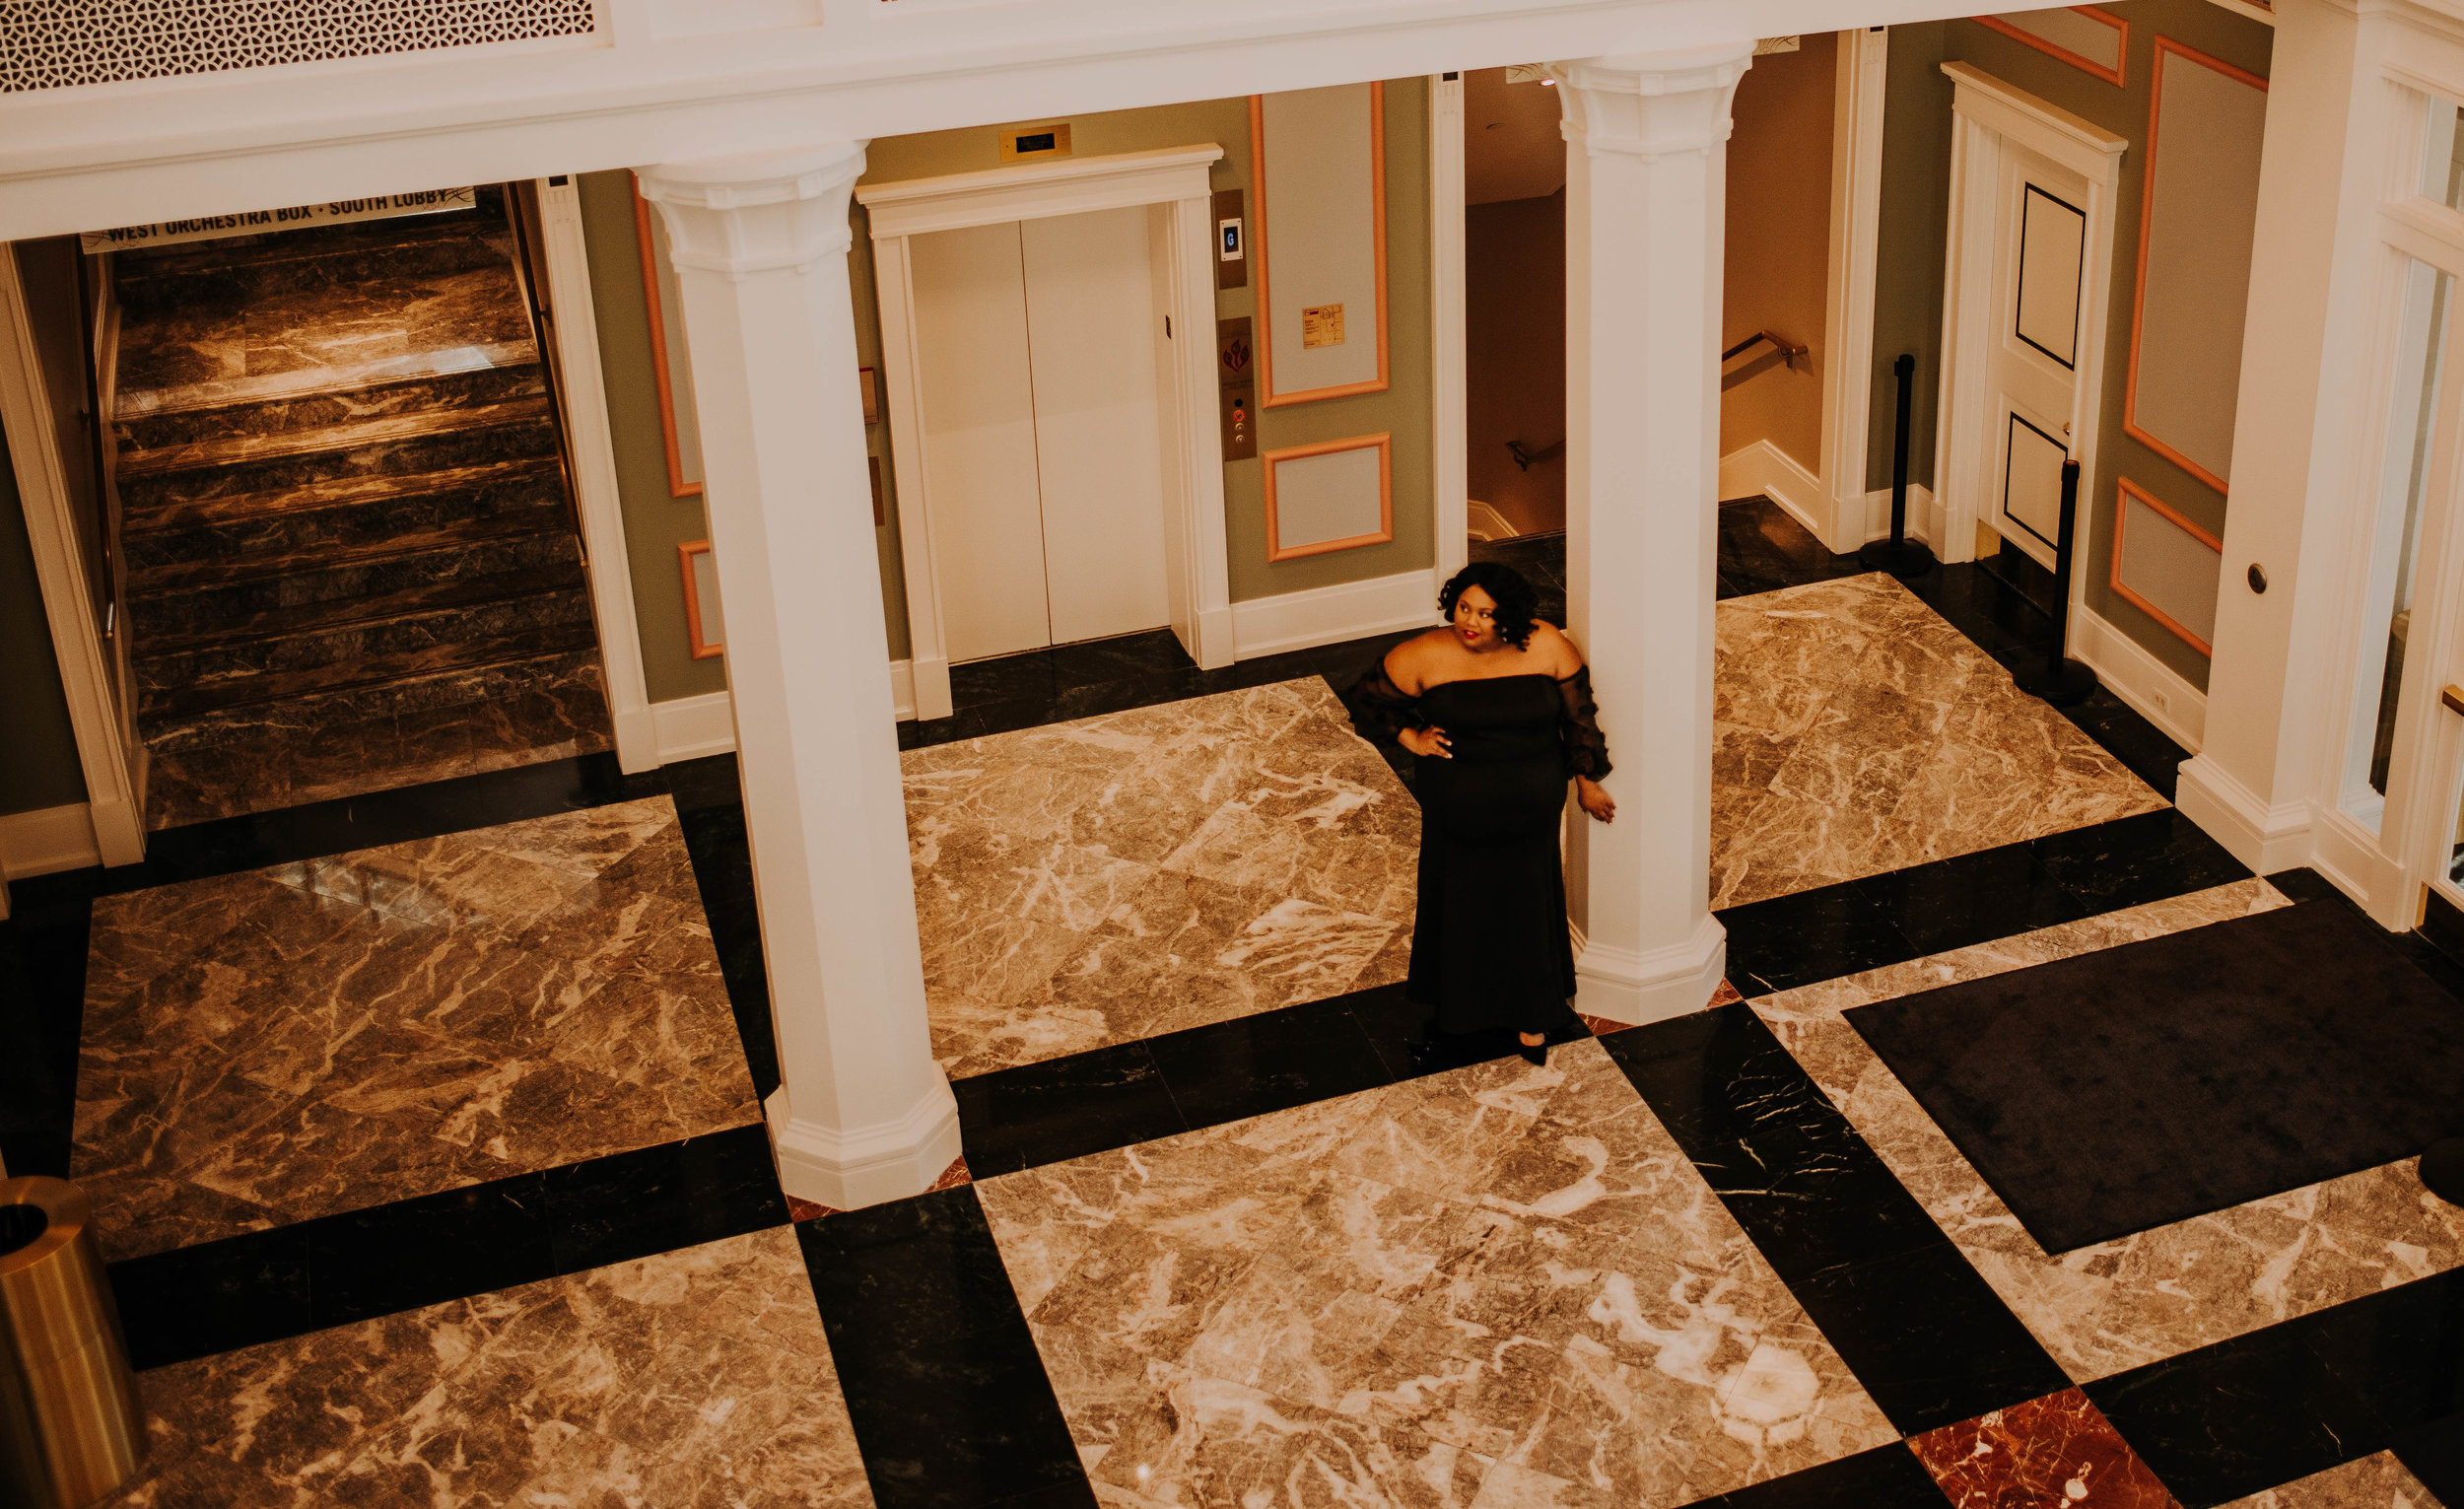 The beautiful marble floors inside the Palladium. Home of the Carmel Symphony Orchestra.